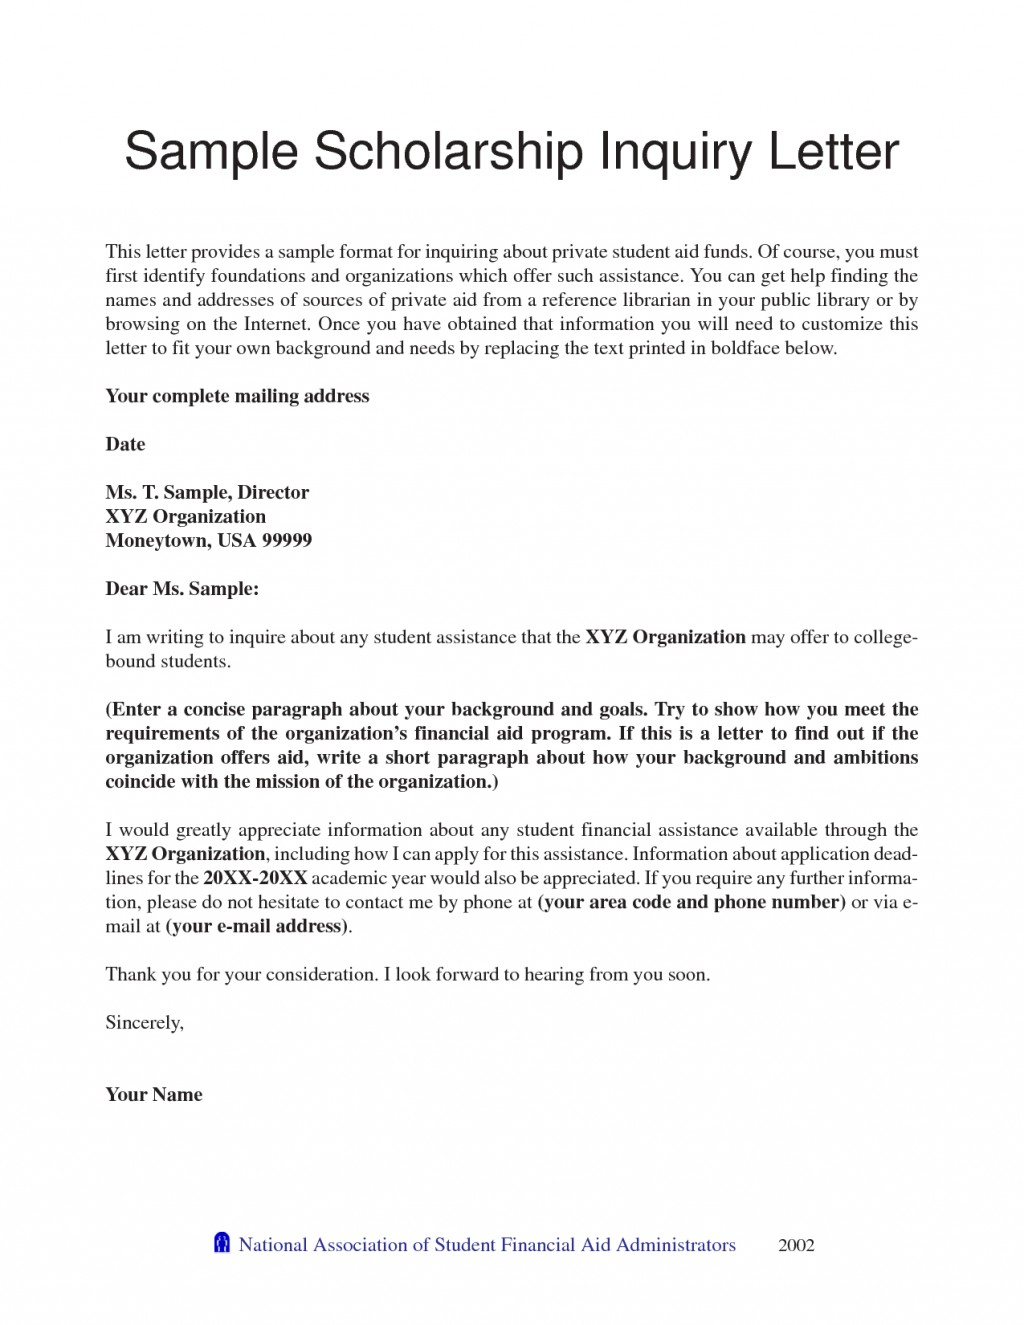 019 Collection Of Solutions College Scholarship Recommendation Letter Sample For Format Layout Scholarships Without Essays Essay Stunning Requirements No Required In Texas Large